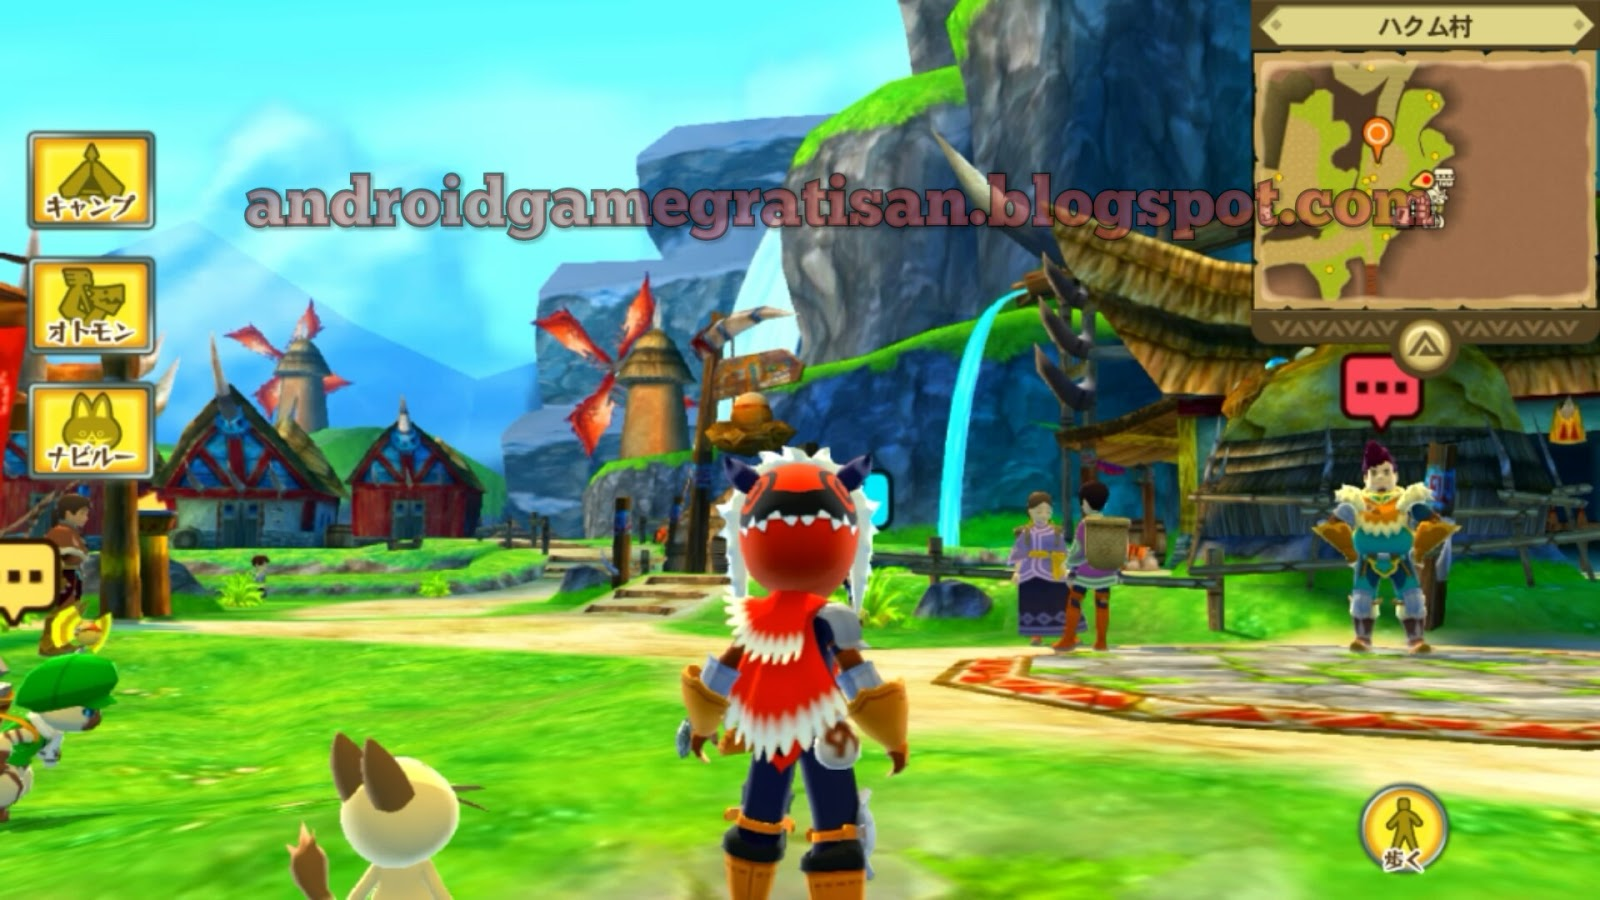 Monster hunter stories android mod apk